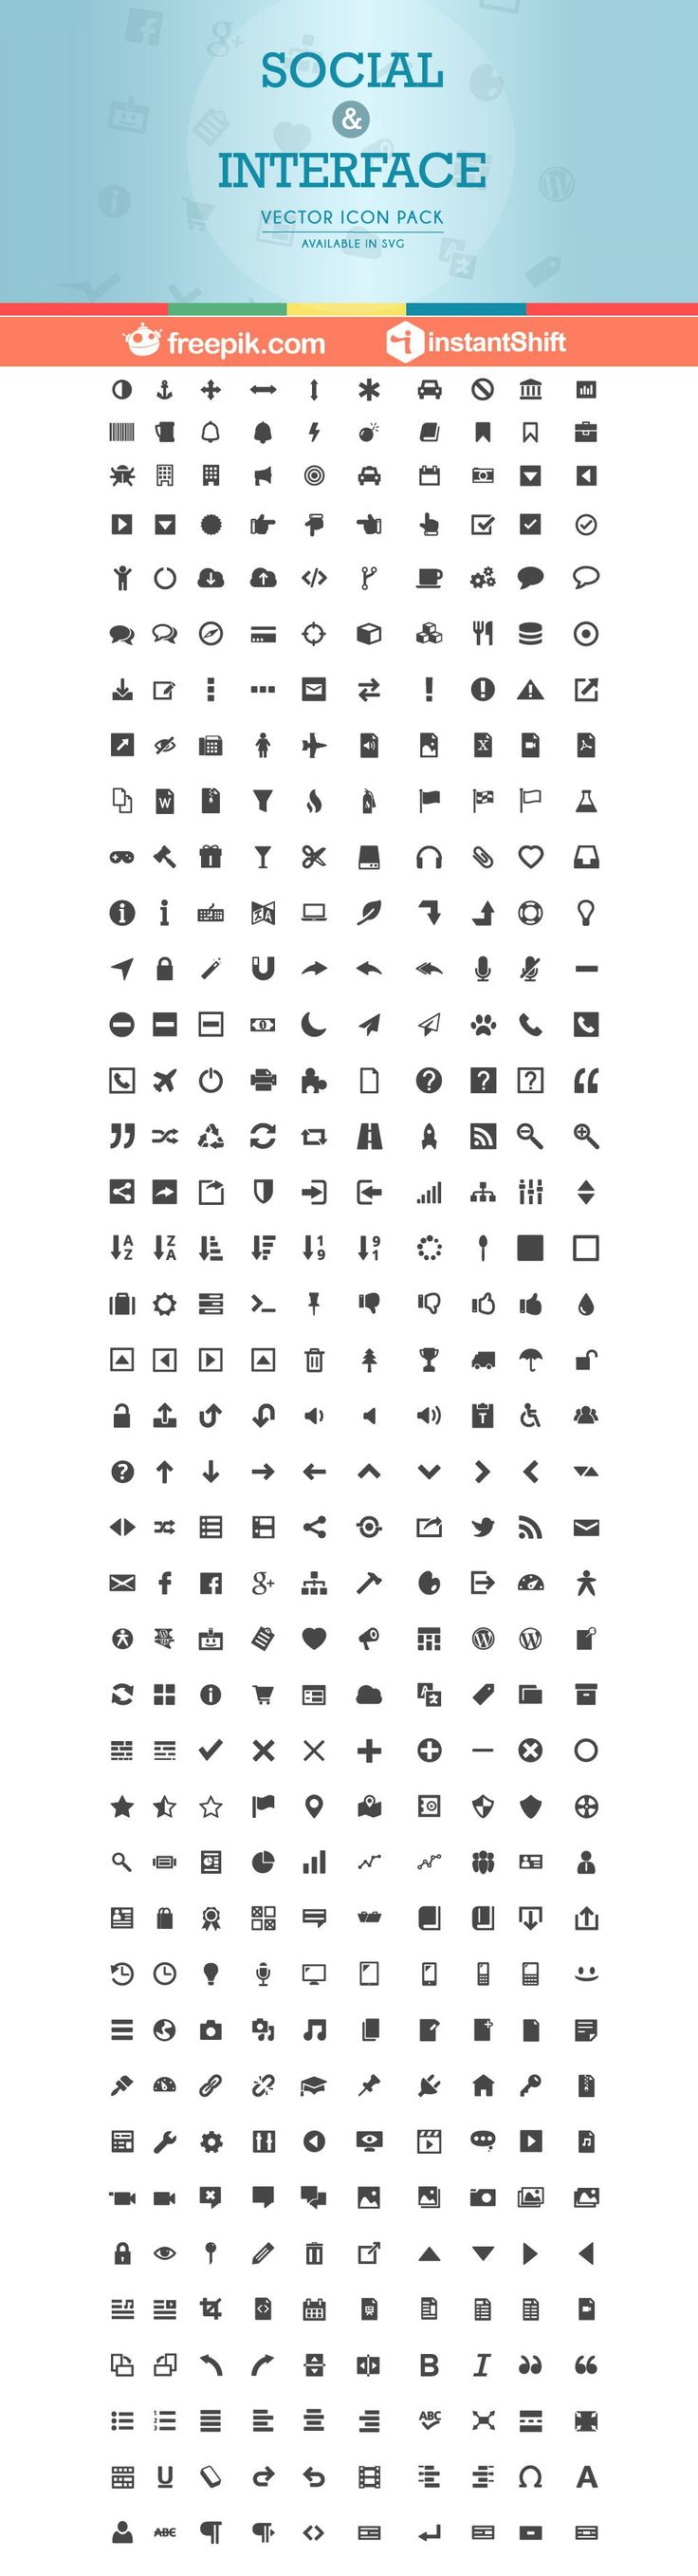 Free Icons for Web and User Interface Design # 70 - This post shocasing latest and trending free icons available on internet from various resources.